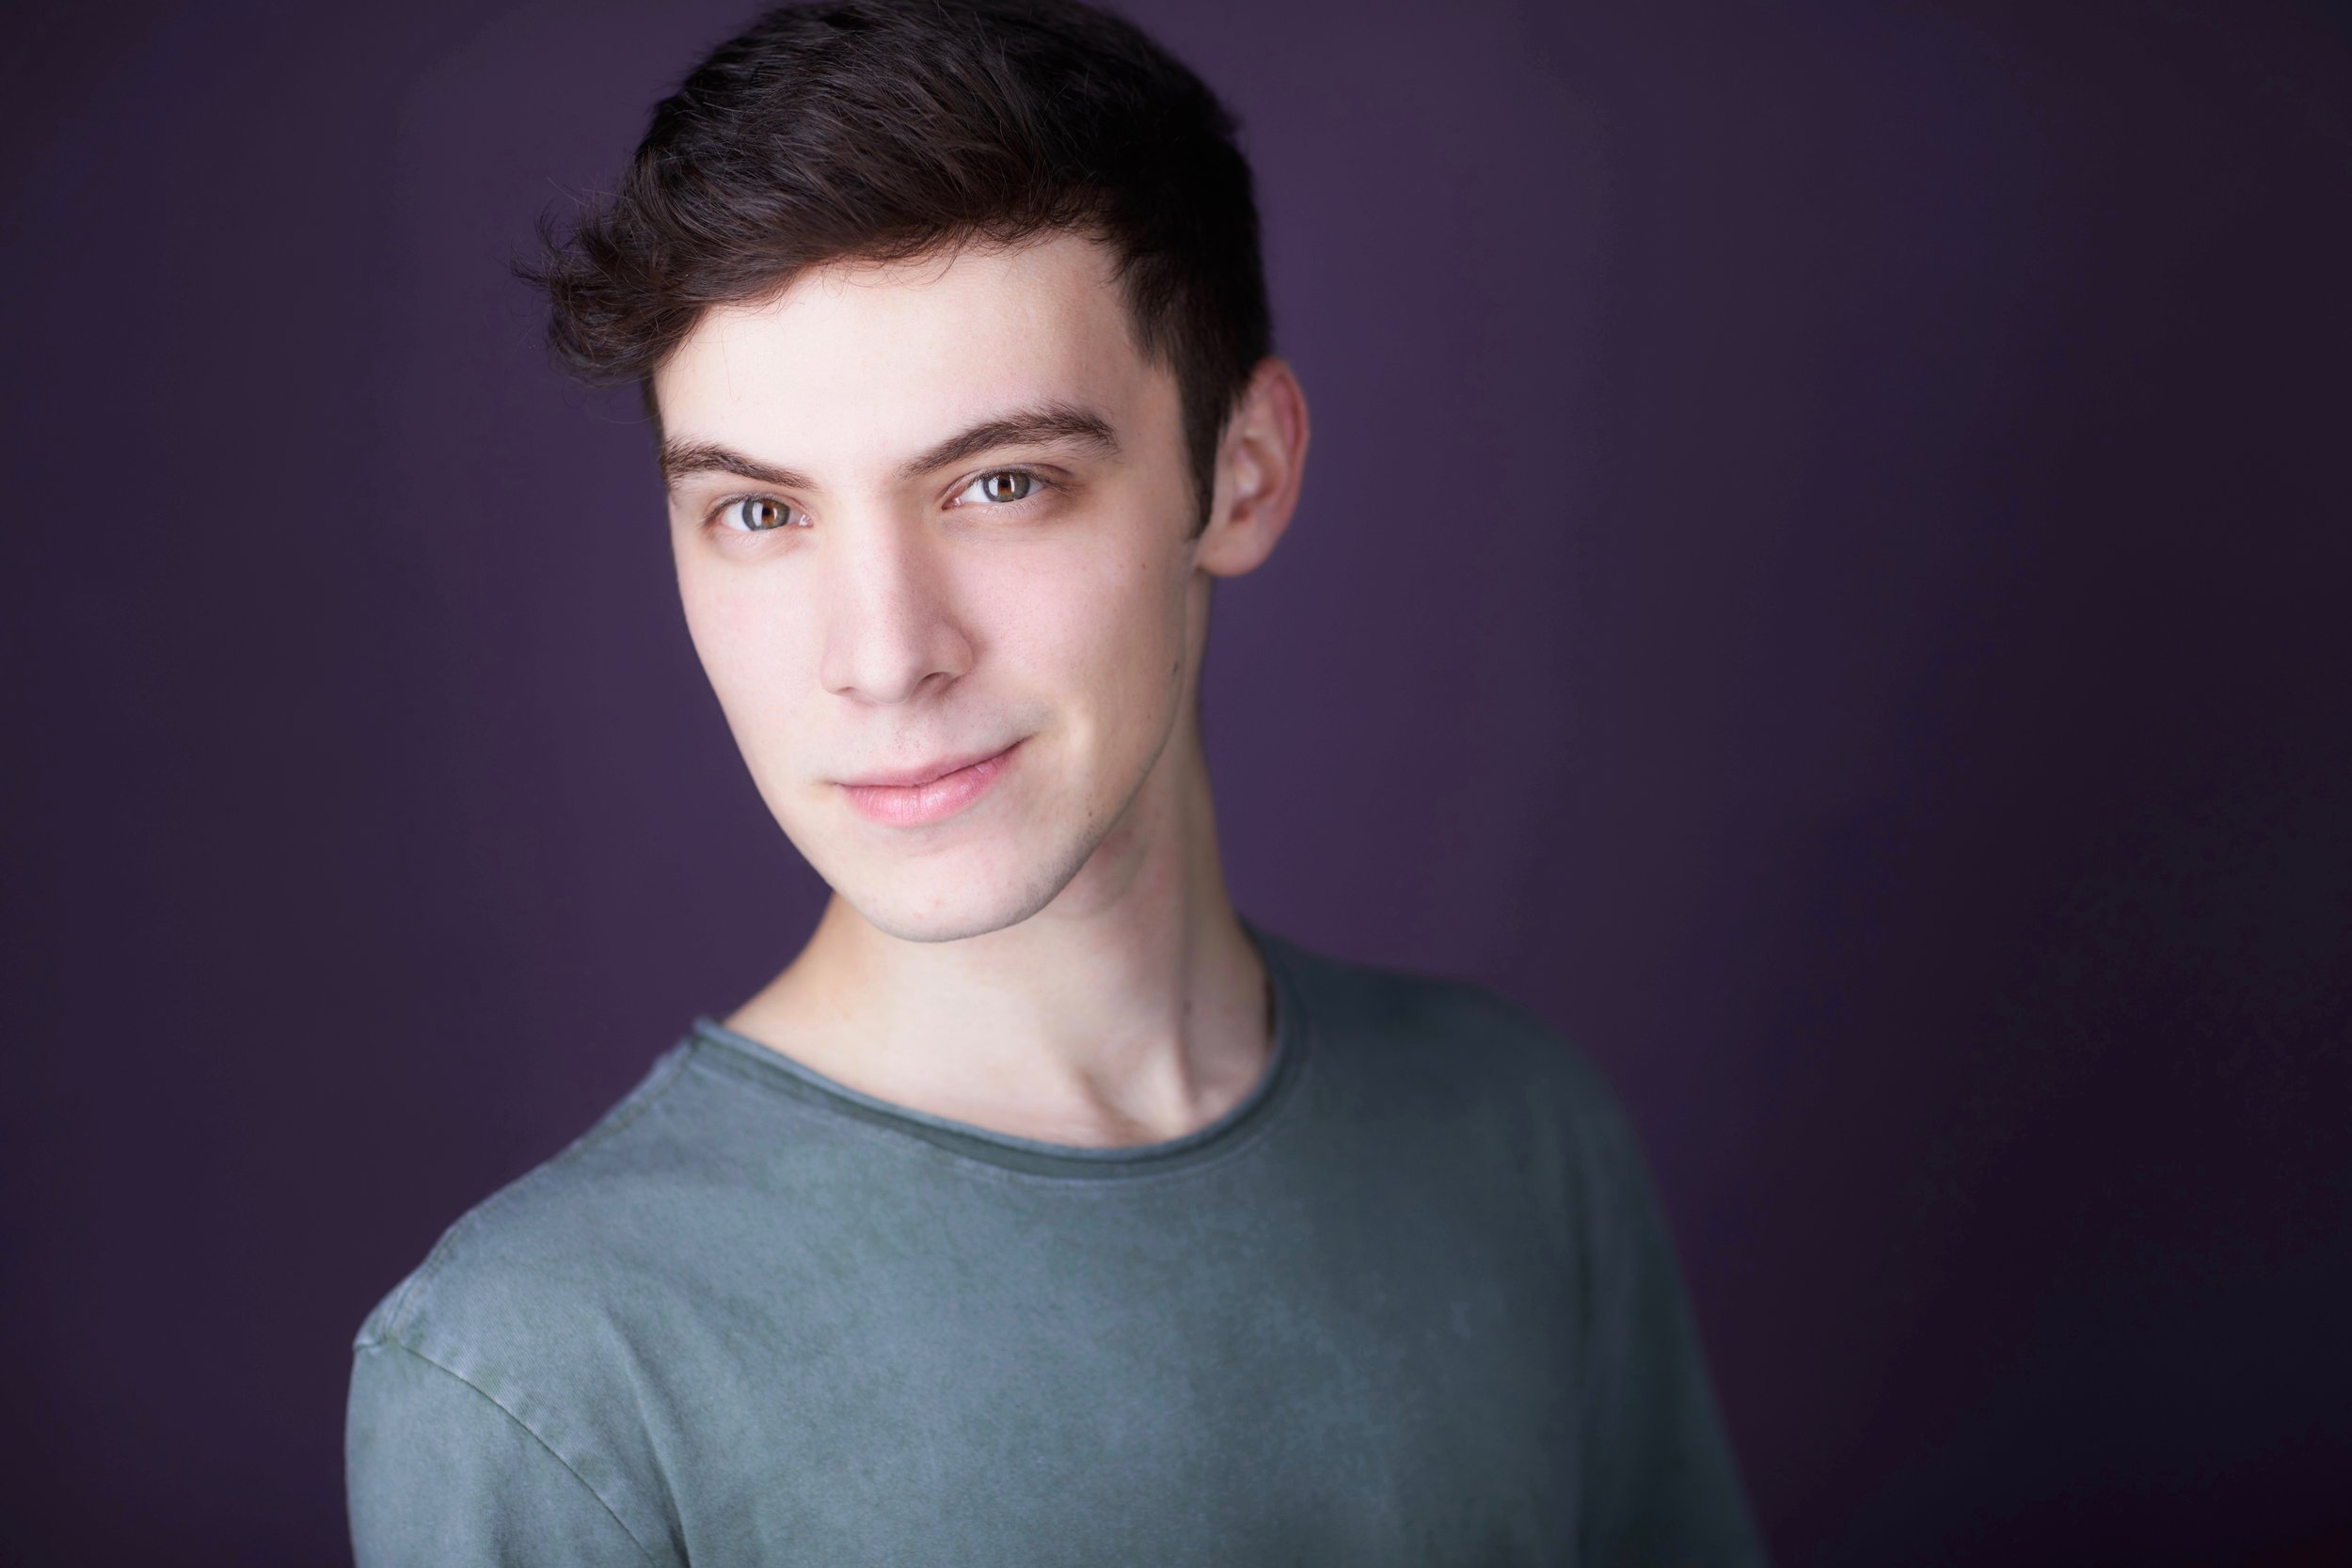 Noah Dunton Purple Headshot.jpg